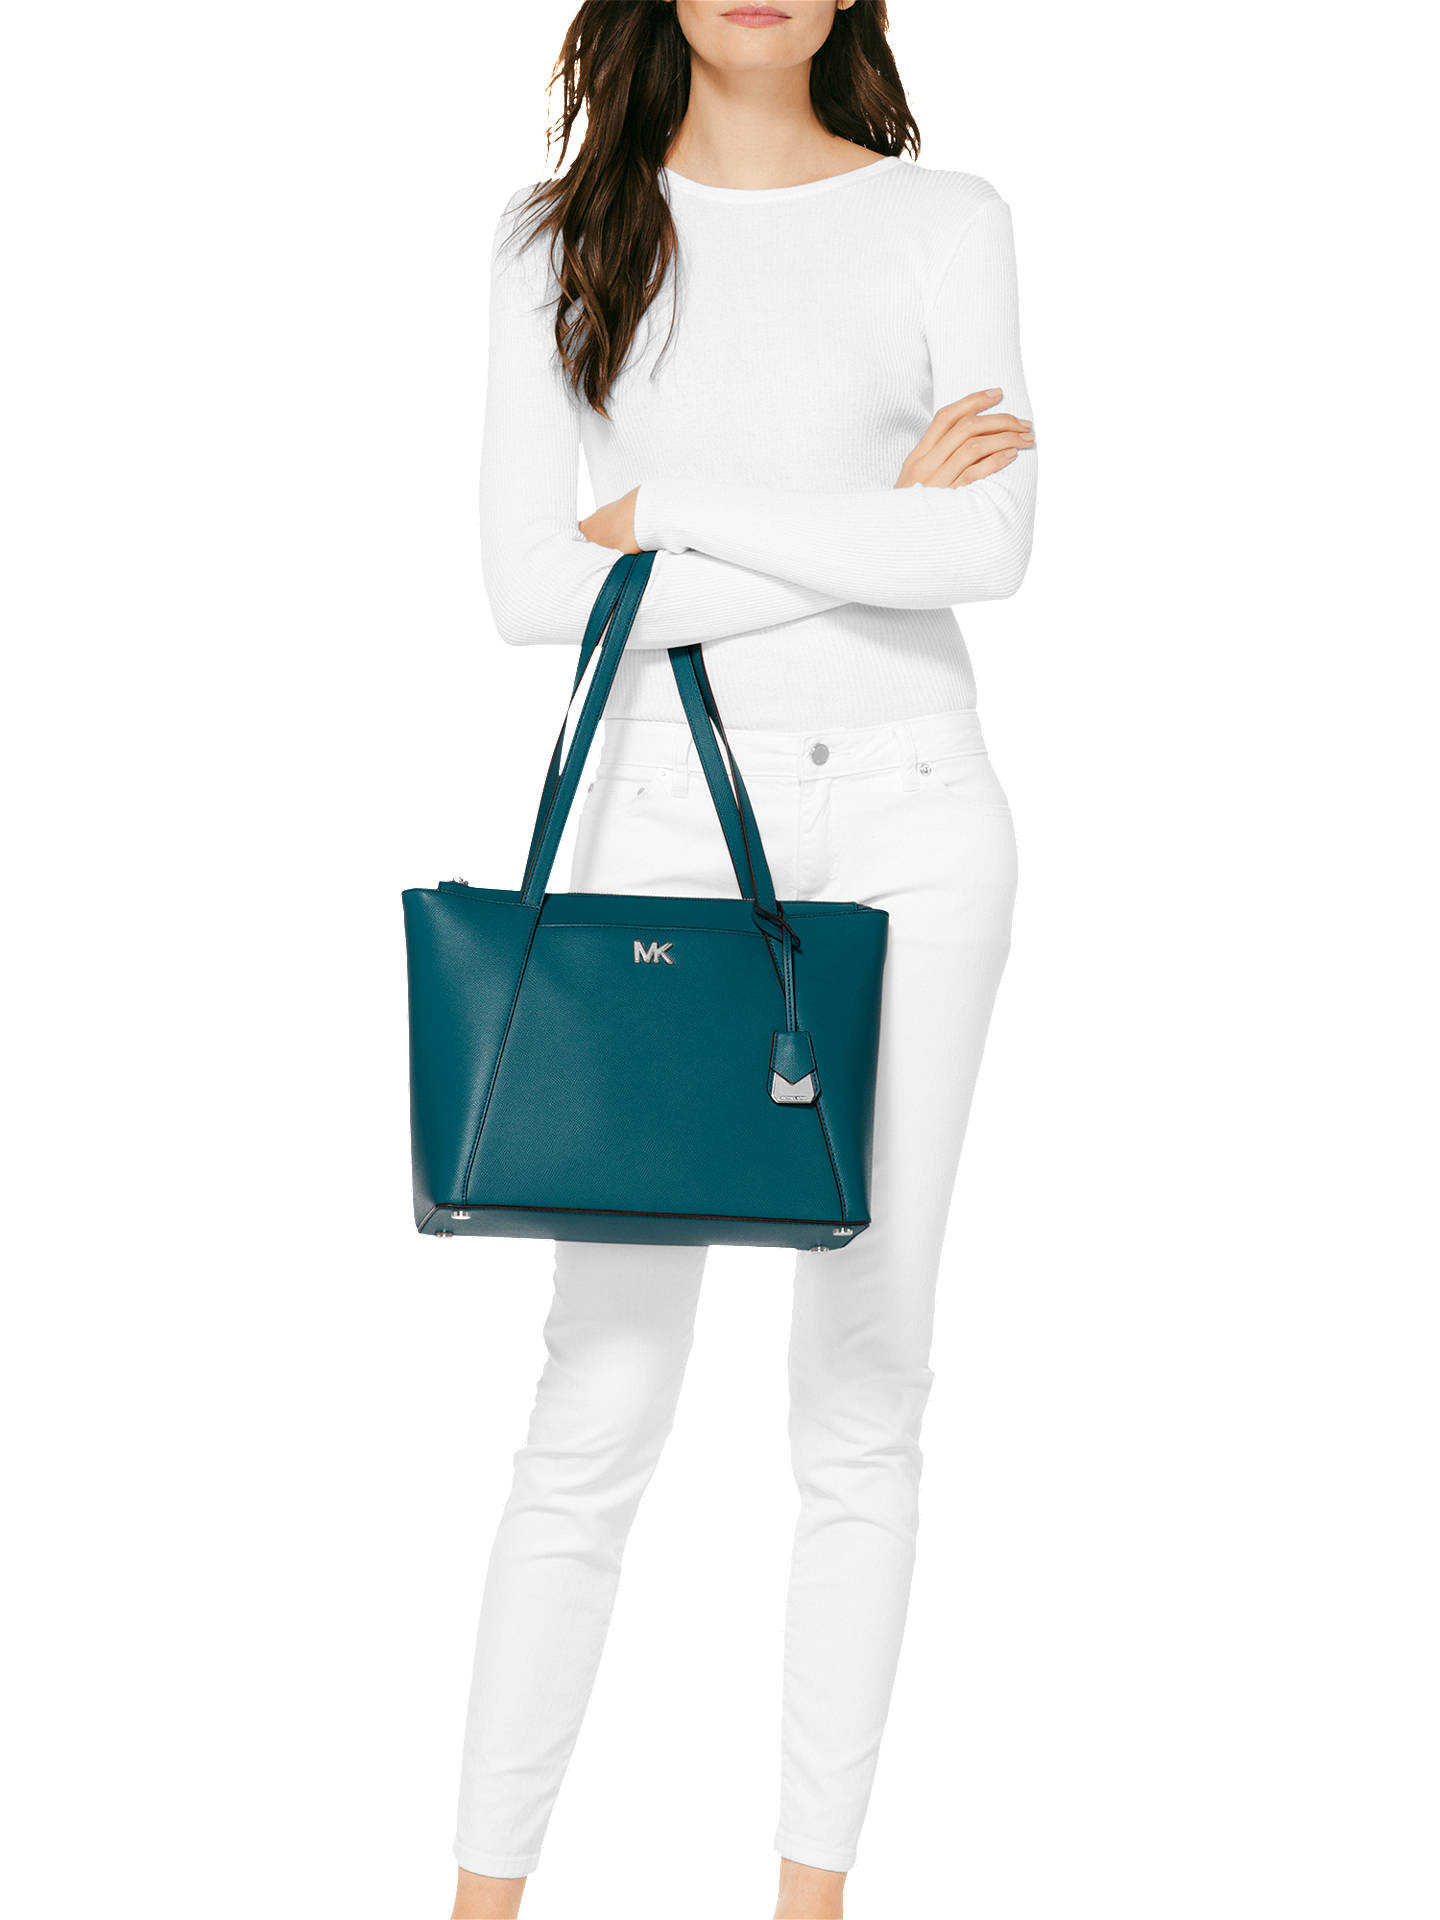 bb91ade90b7da2 ... Buy MICHAEL Michael Kors Maddie East West Medium Leather Tote Bag, Luxe  Teal Online at